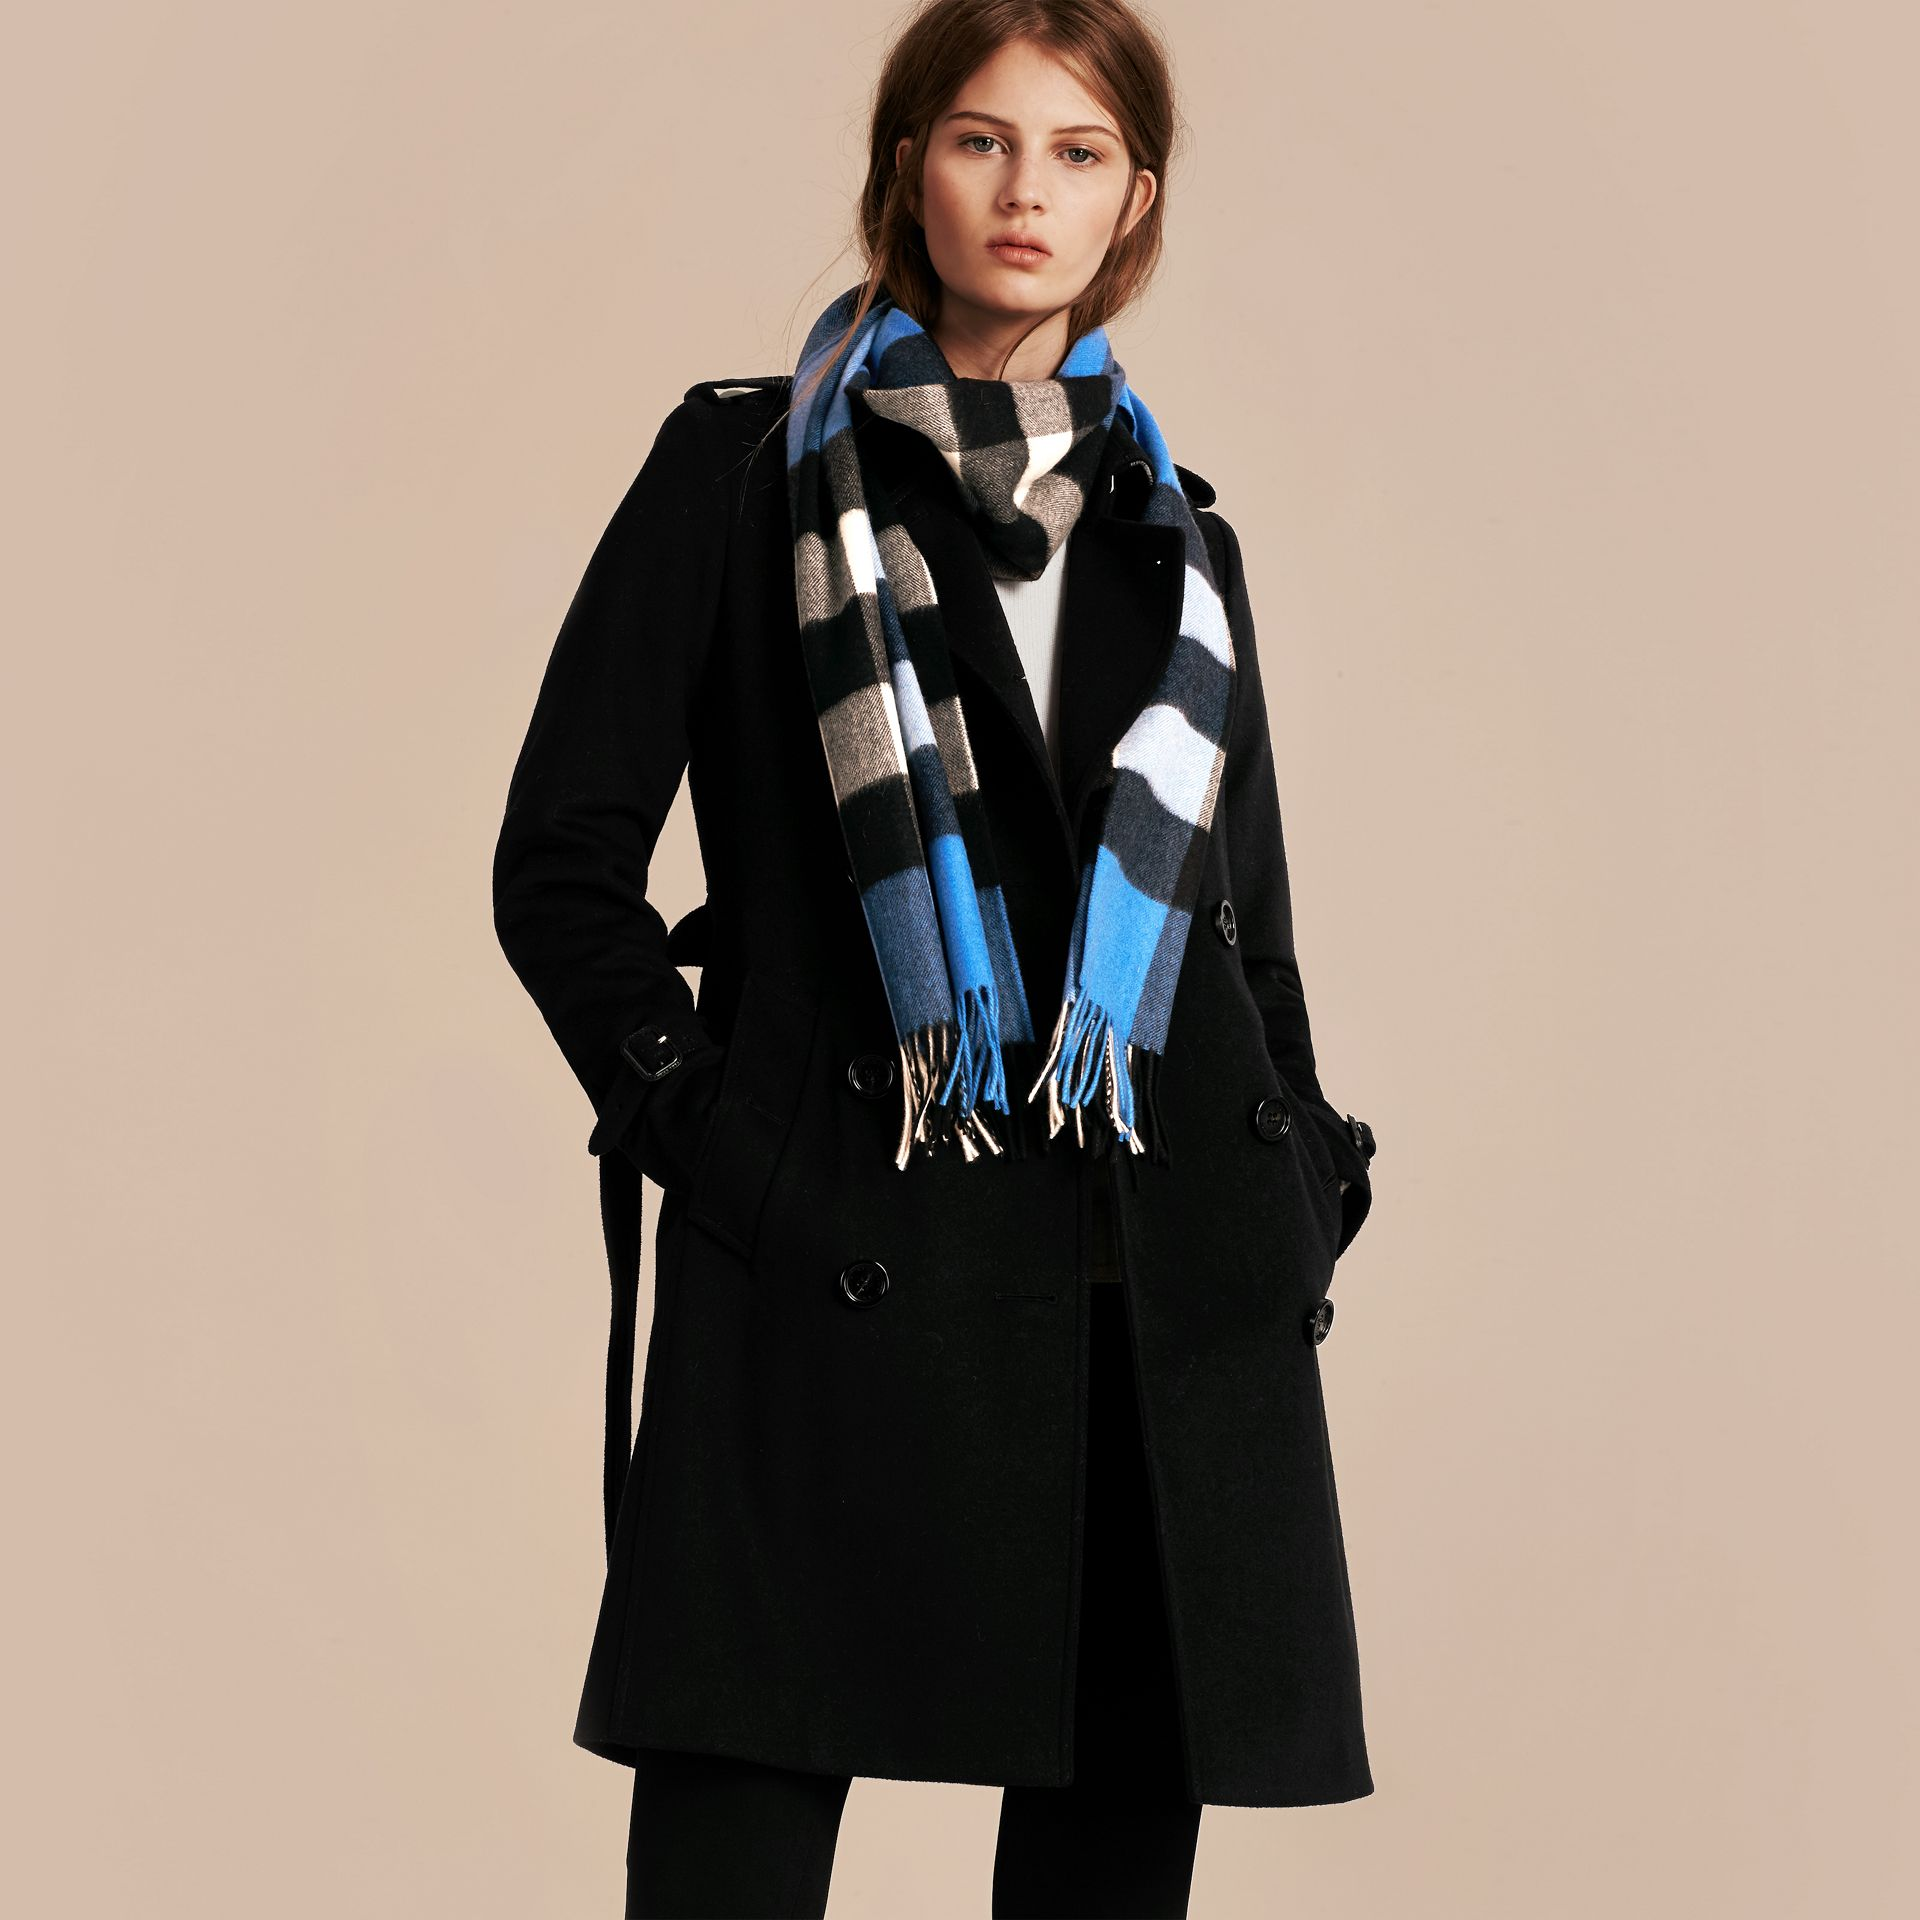 Bright cornflower blue The Large Classic Cashmere Scarf in Check Bright Cornflower Blue - gallery image 3